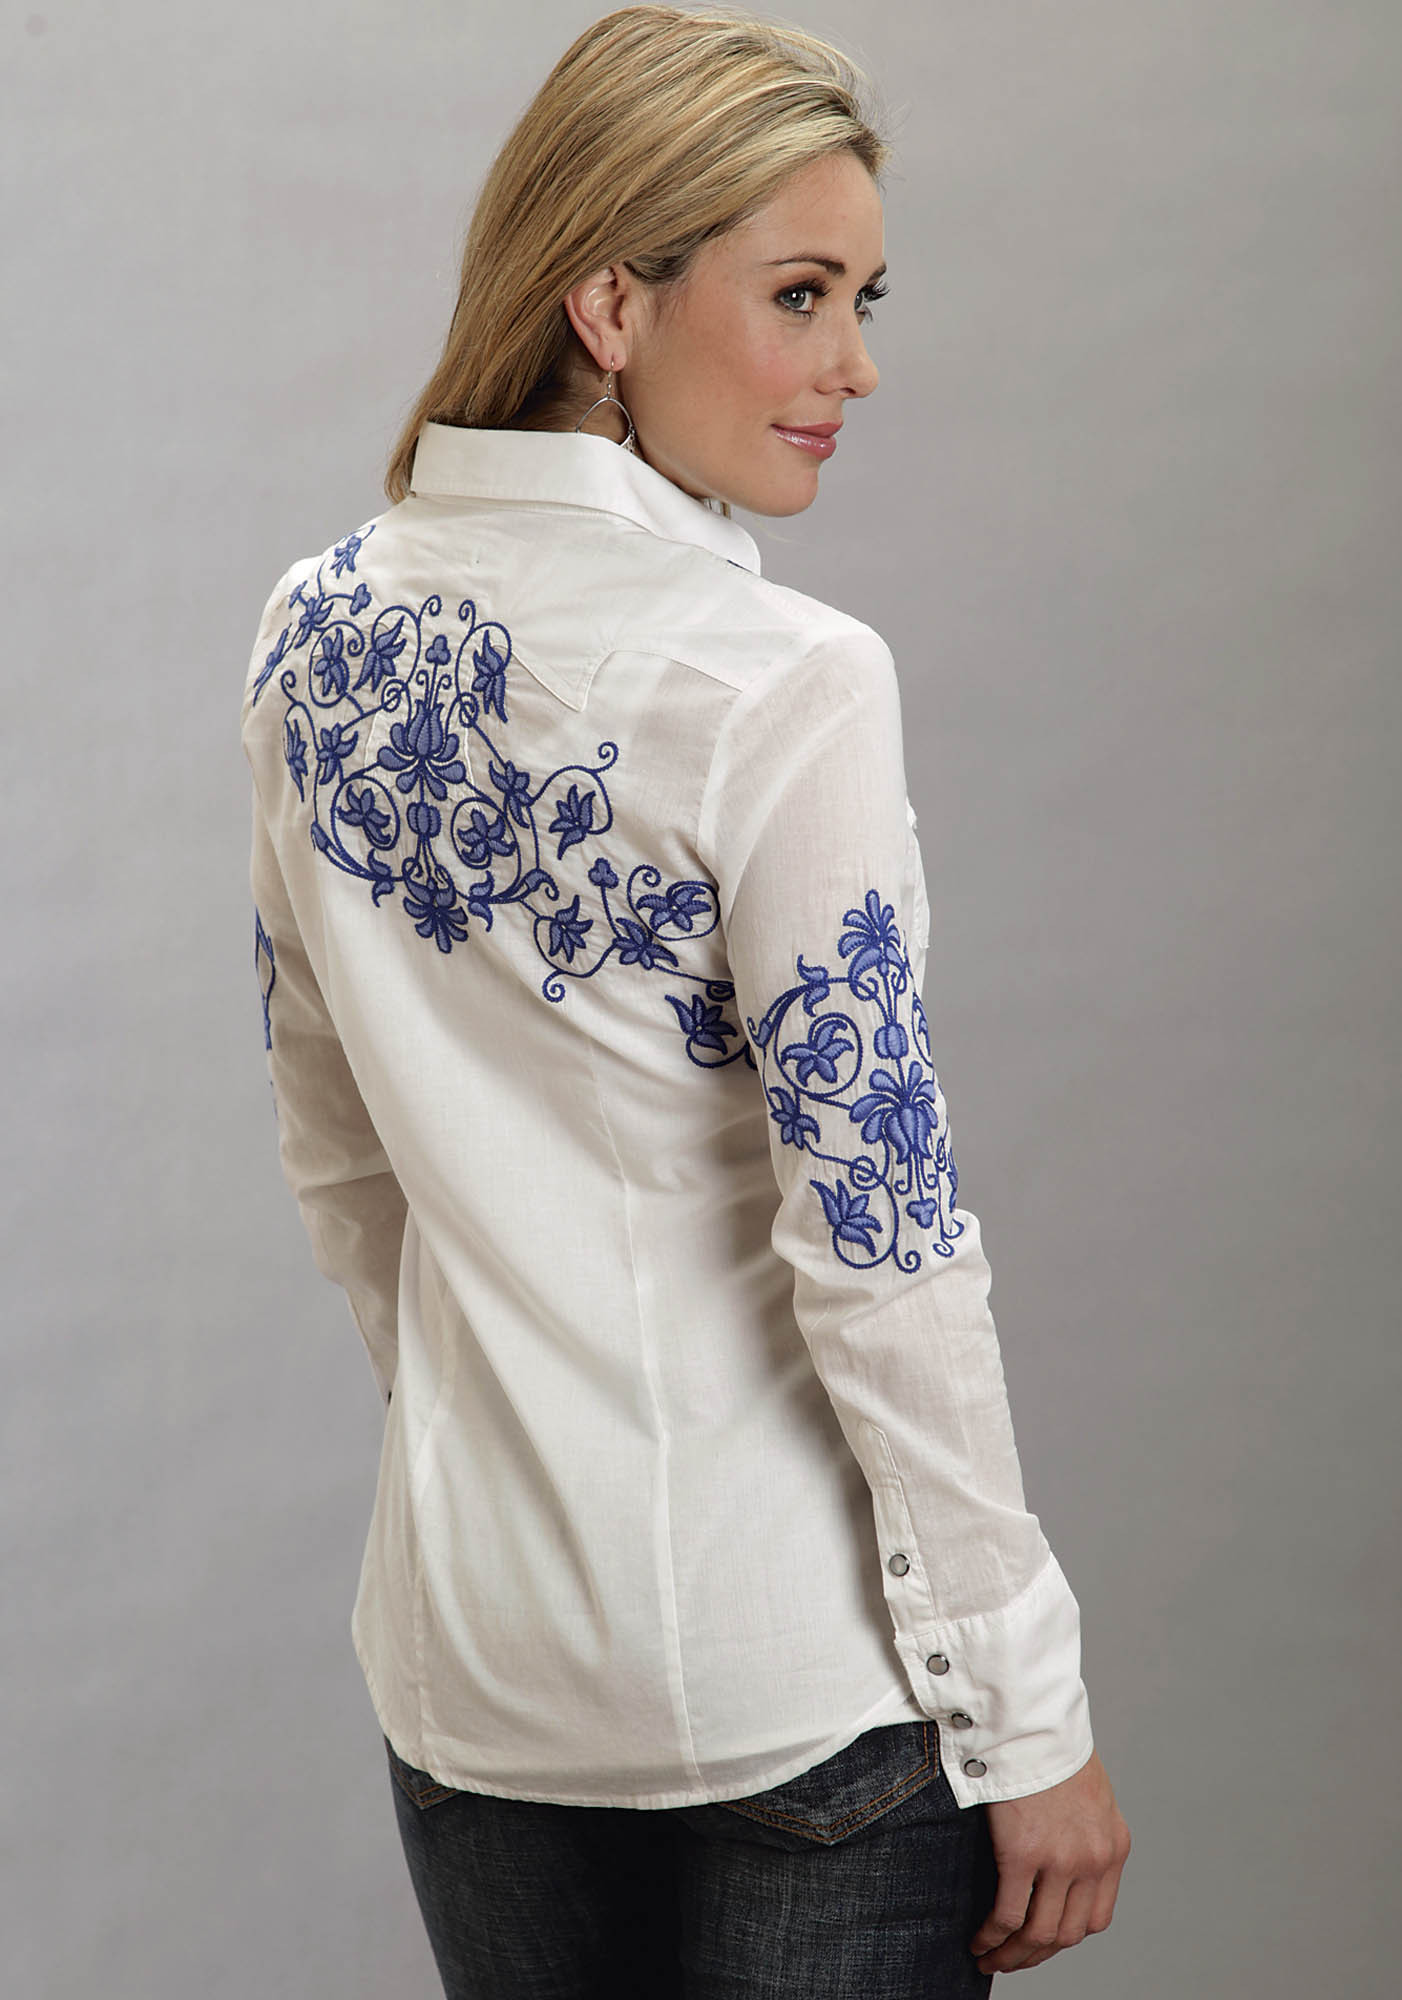 Stetson Women 39 S White Cotton Lawn Embroidered Long Sleeve